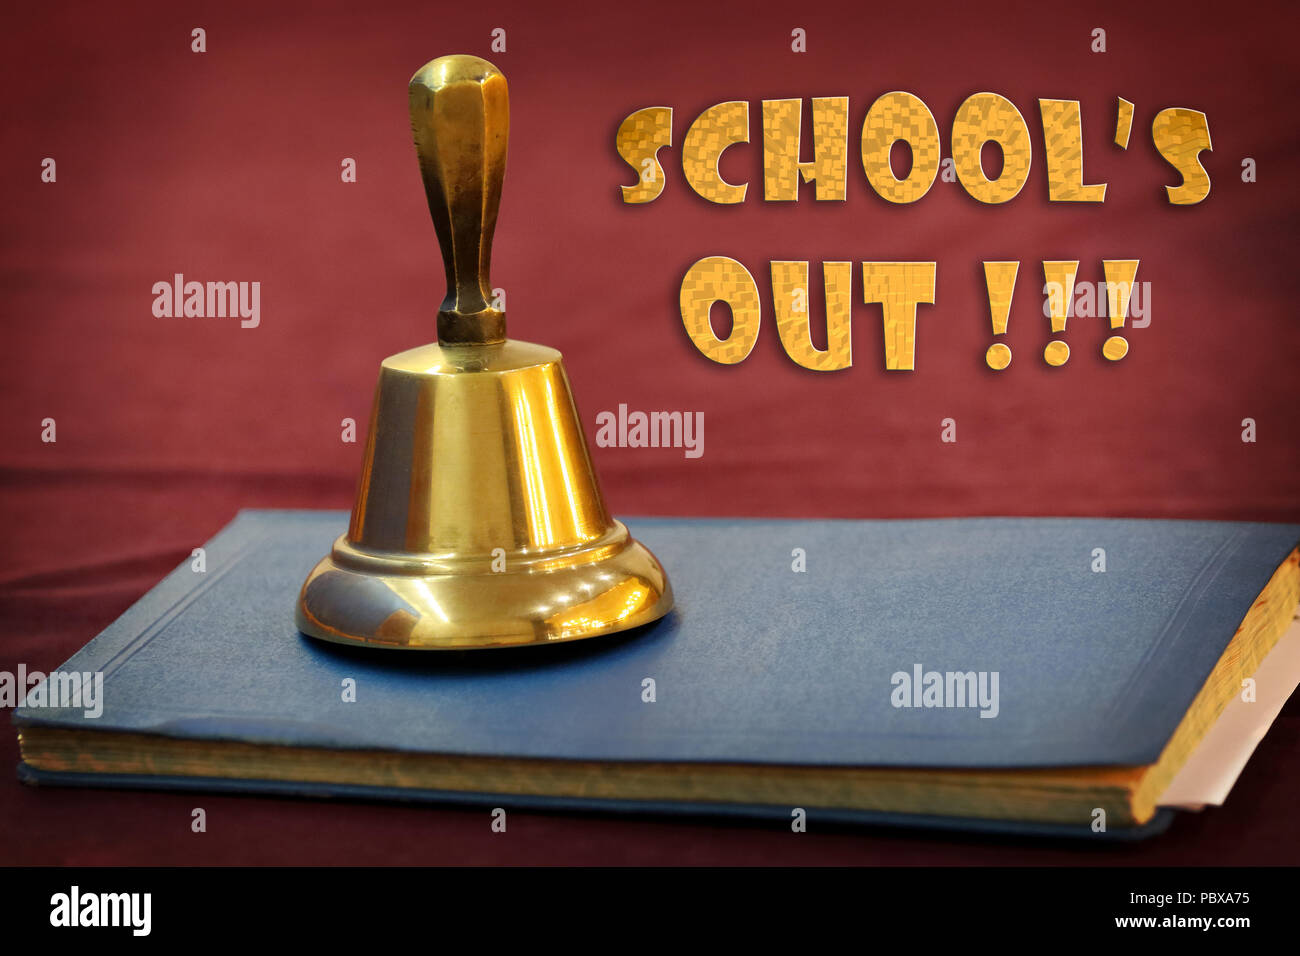 Bell End Stock Photos & Bell End Stock Images - Alamy